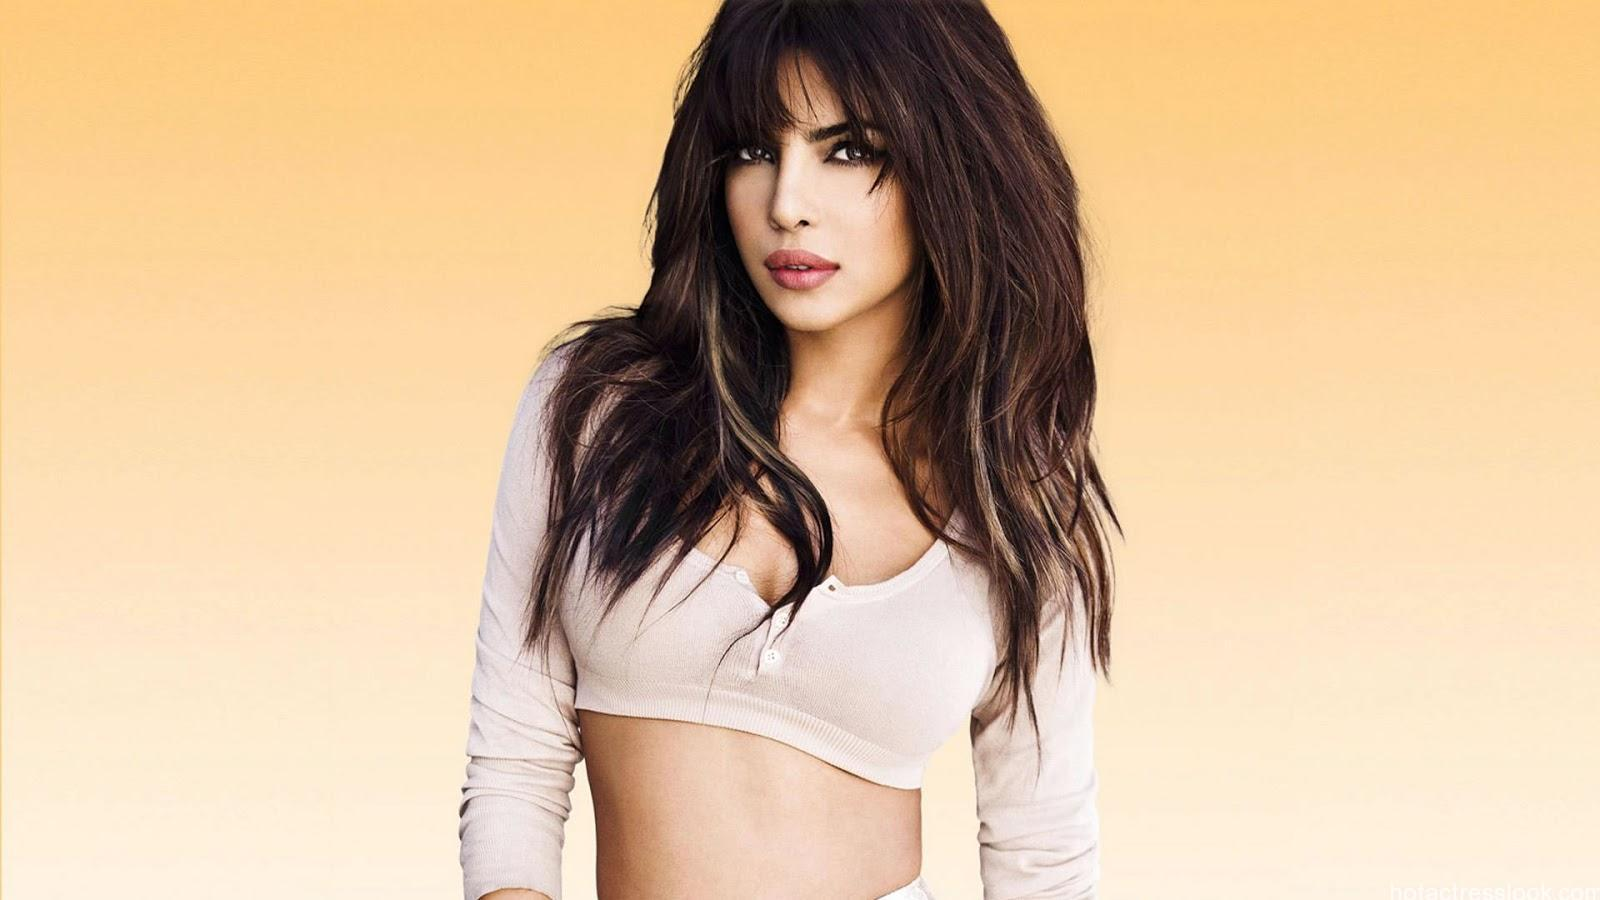 Priyanka-Chopra-Latest-HD-Pictures-Free-download.jpg